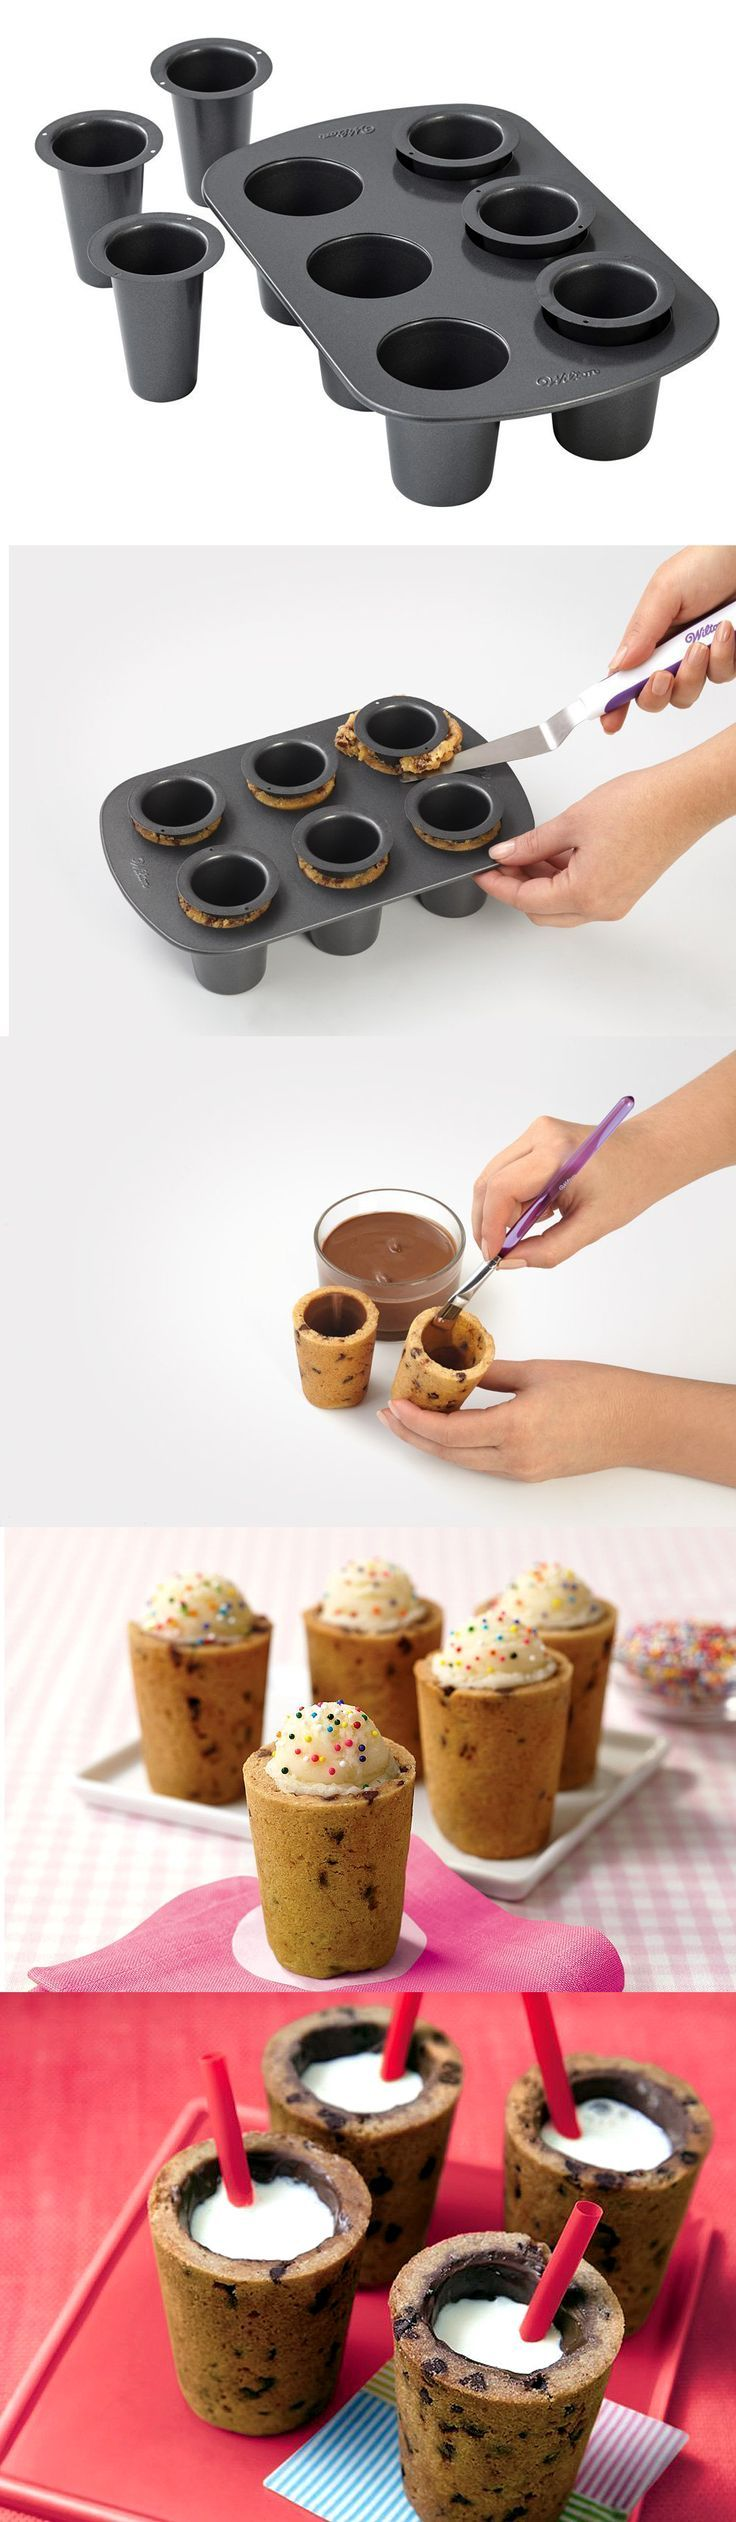 Change the way you party by trying this edible shot glasses. Instant dessert after every shot. Shots have never tasted even better. Check it out ==>   Edible Shot Glass Dessert   http://gwyl.io/edible-shot-glass-dessert/